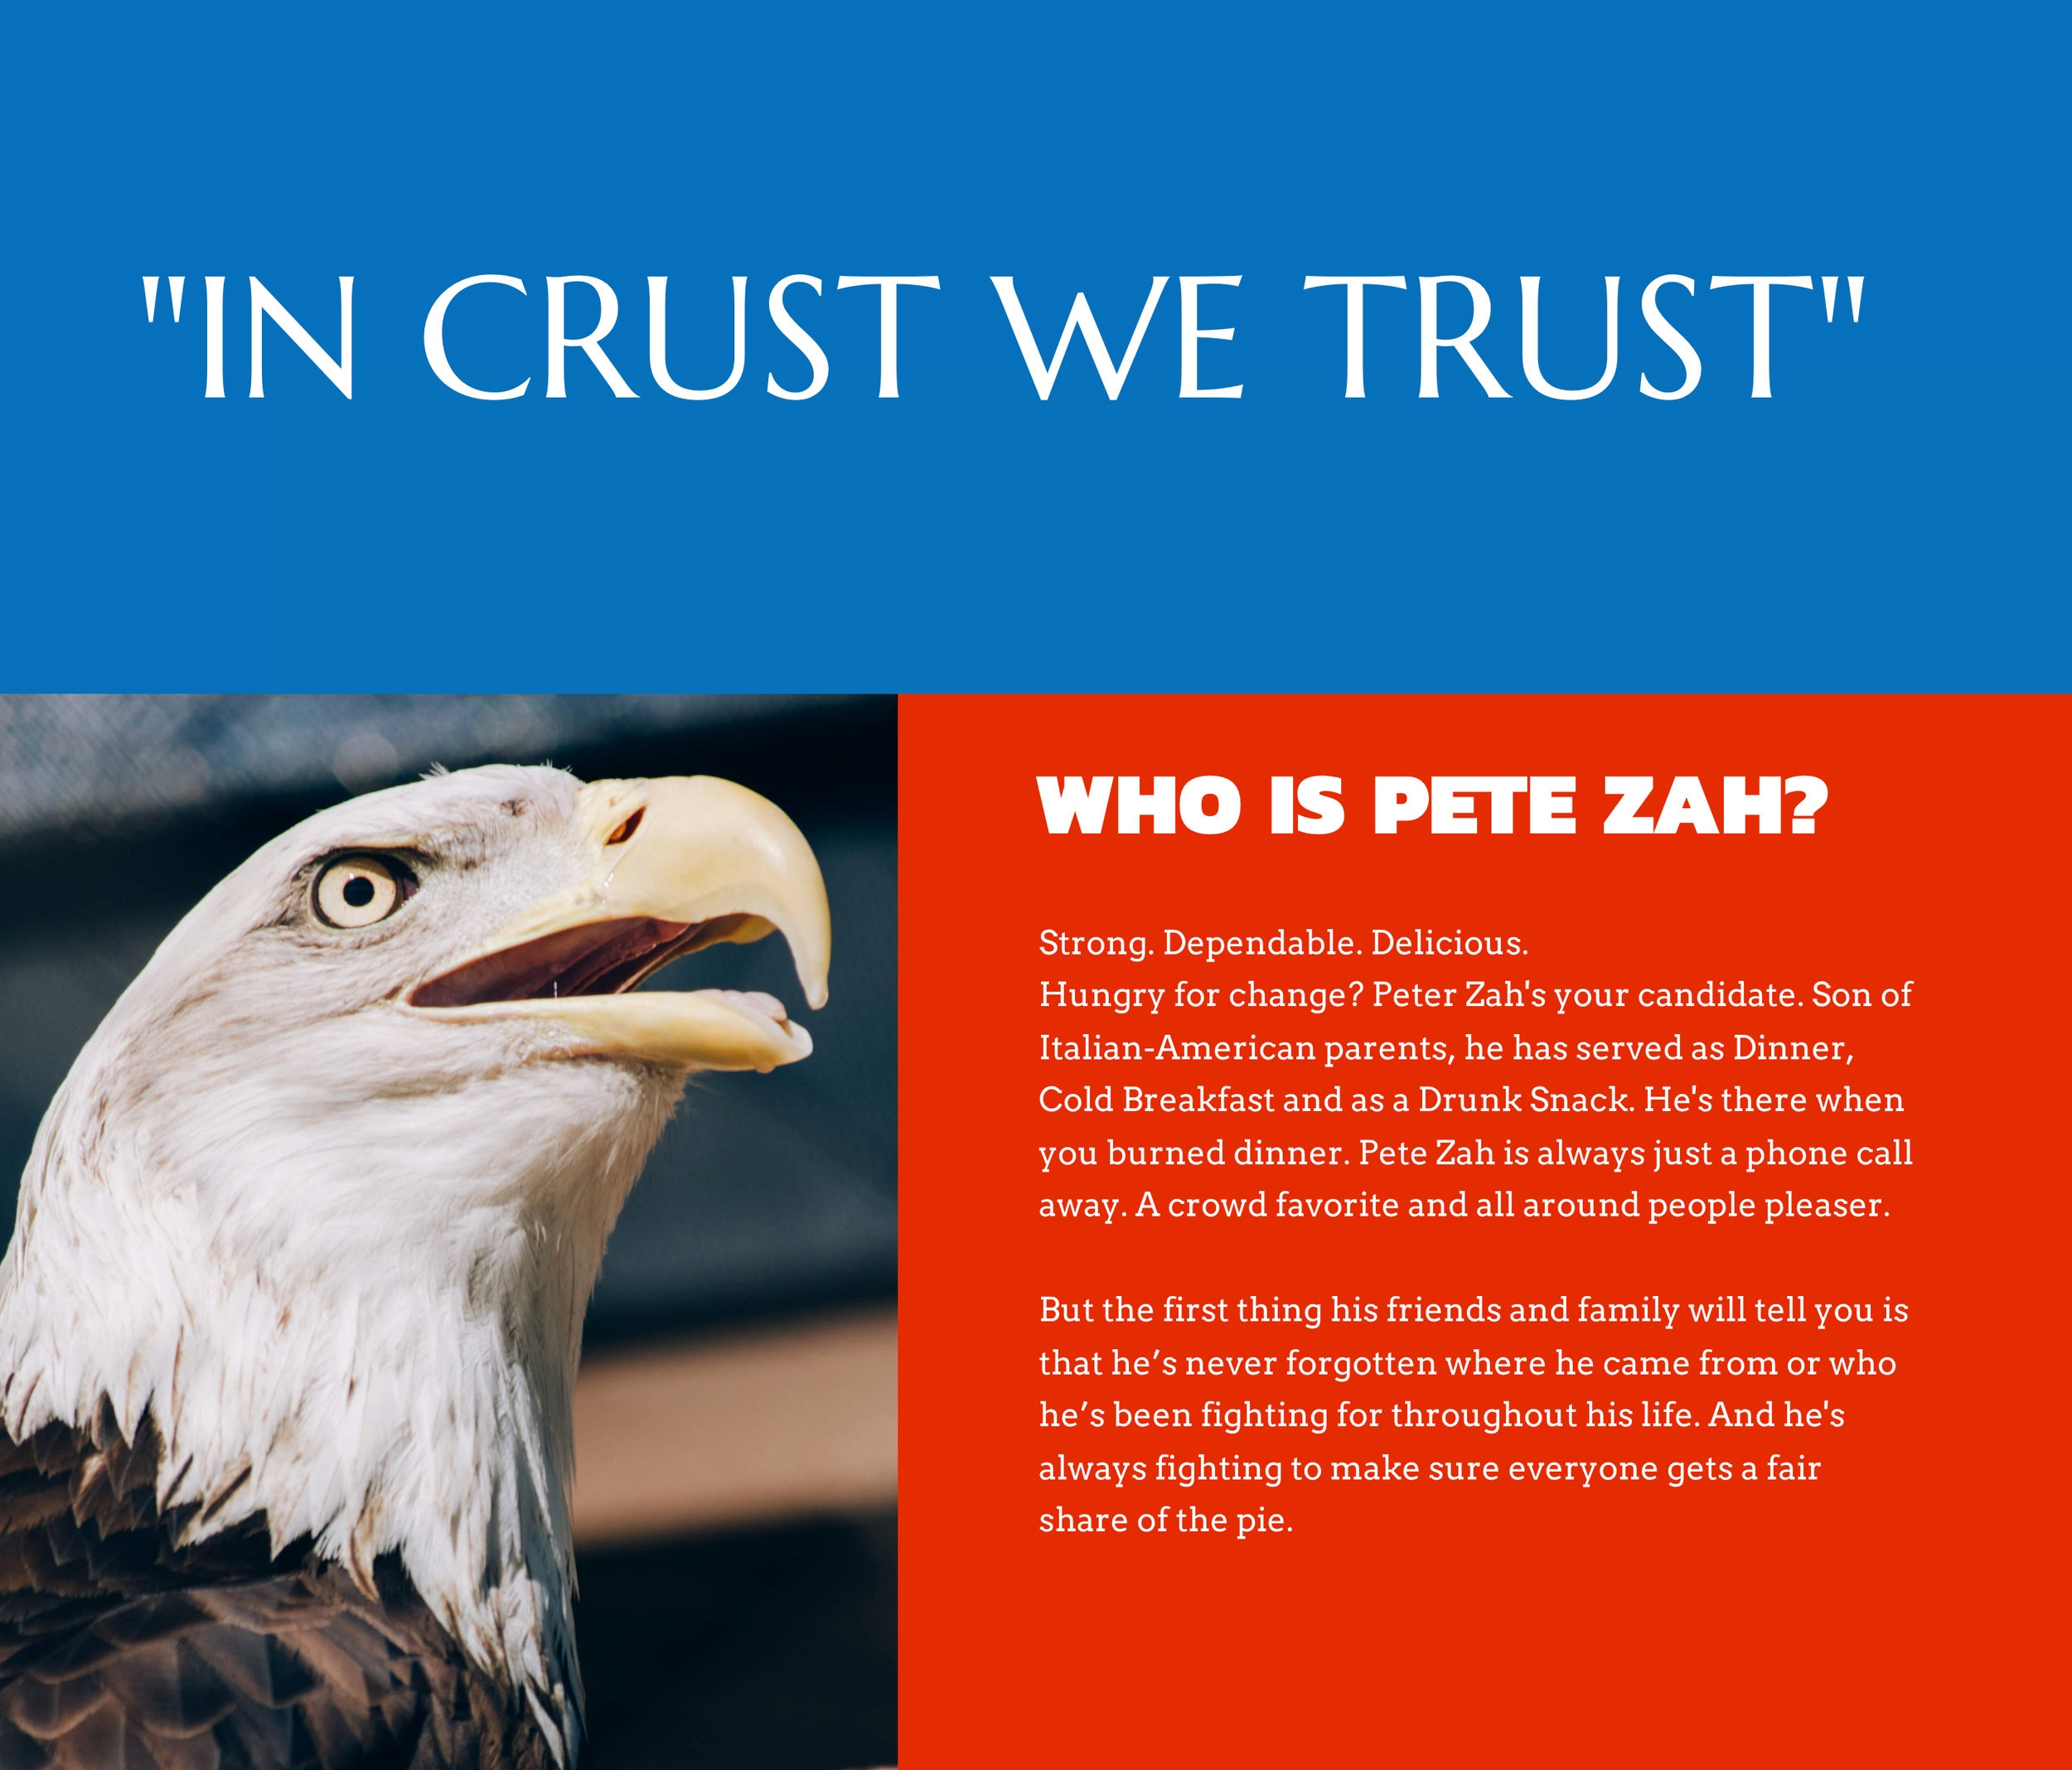 Intro to Pete Zah, the presidential candidate.